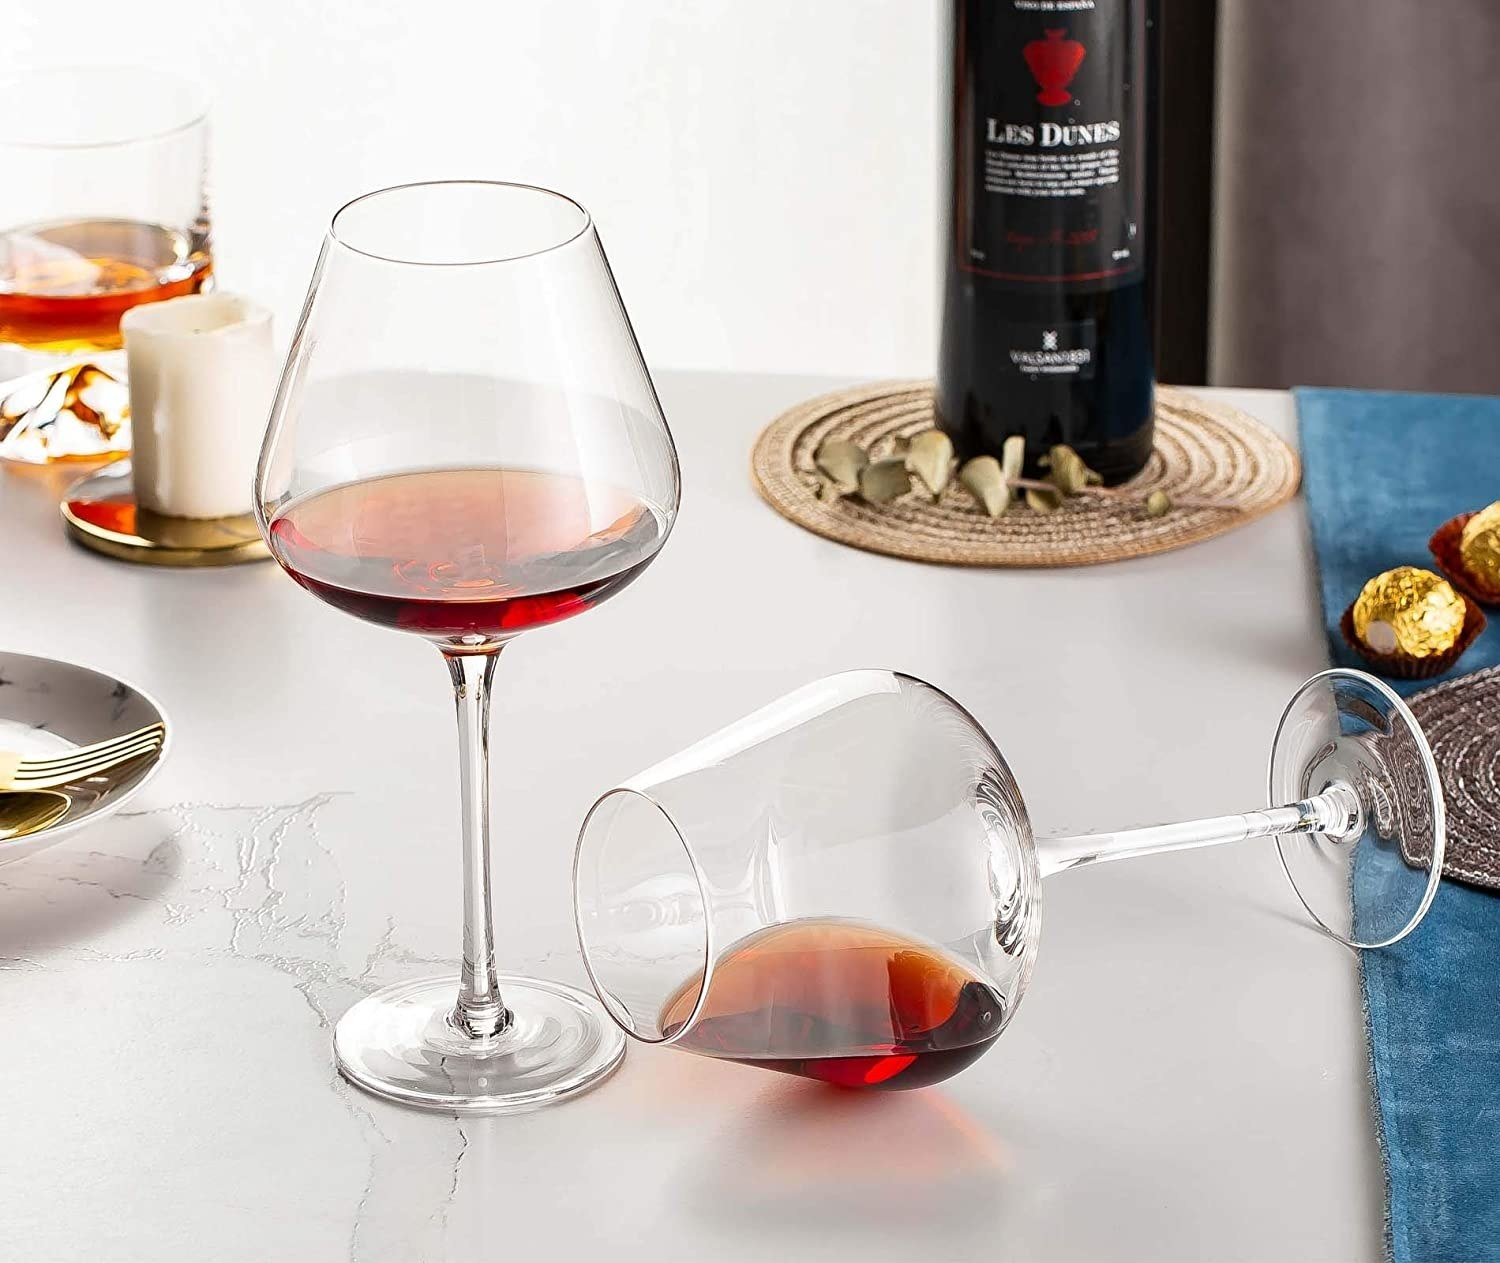 A set of two deep glass long-stemmed wine glasses with red wine